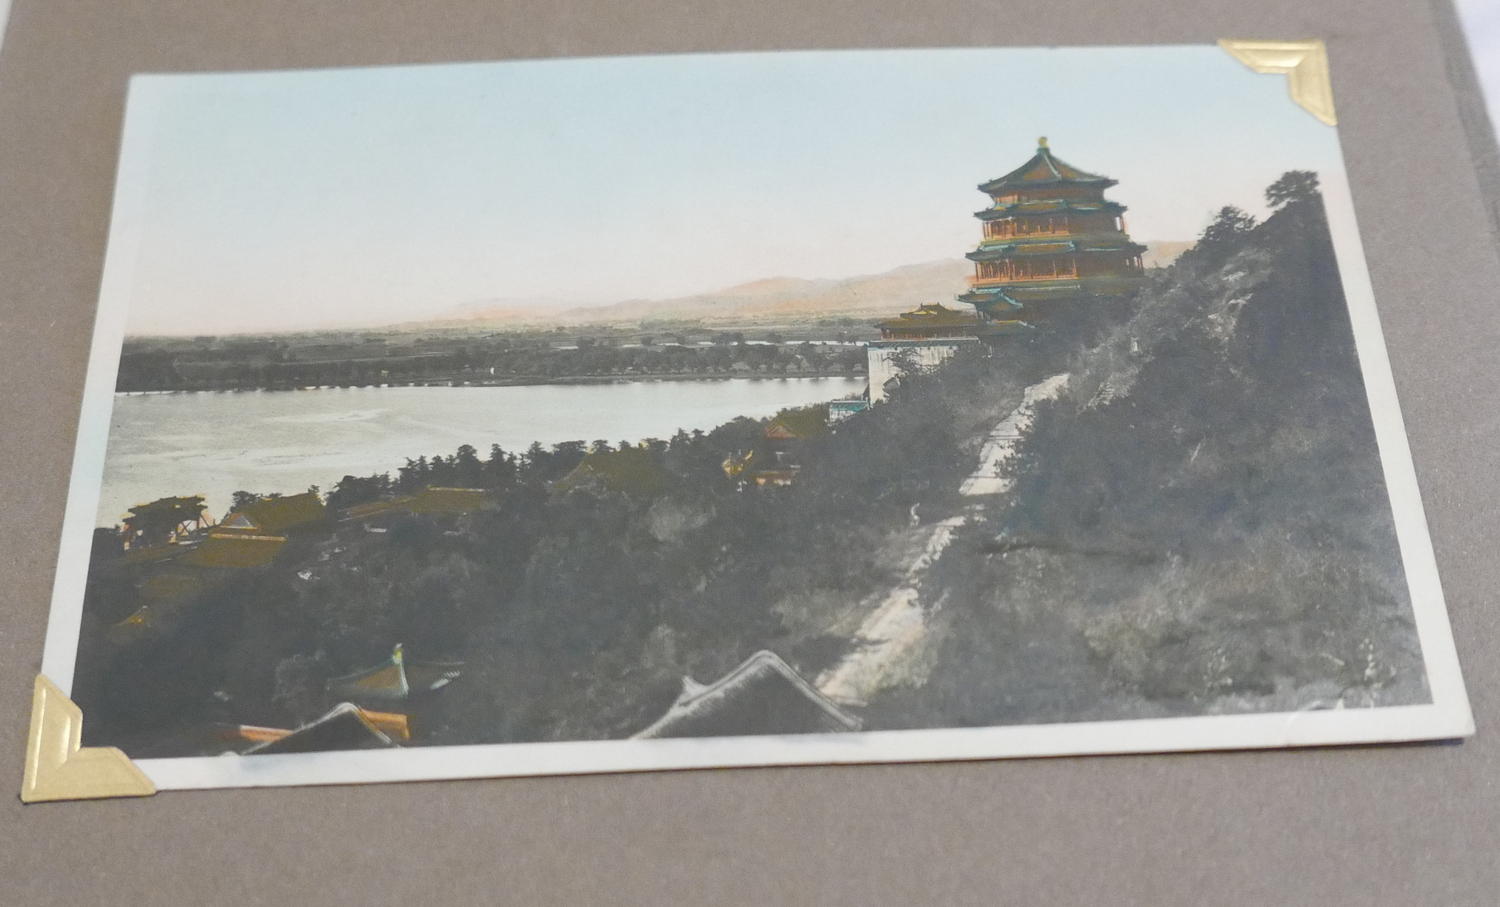 Lot 45 - Album of 24 Photographs of the Summer Palace Bejing c1930 by Mei Li Photographer